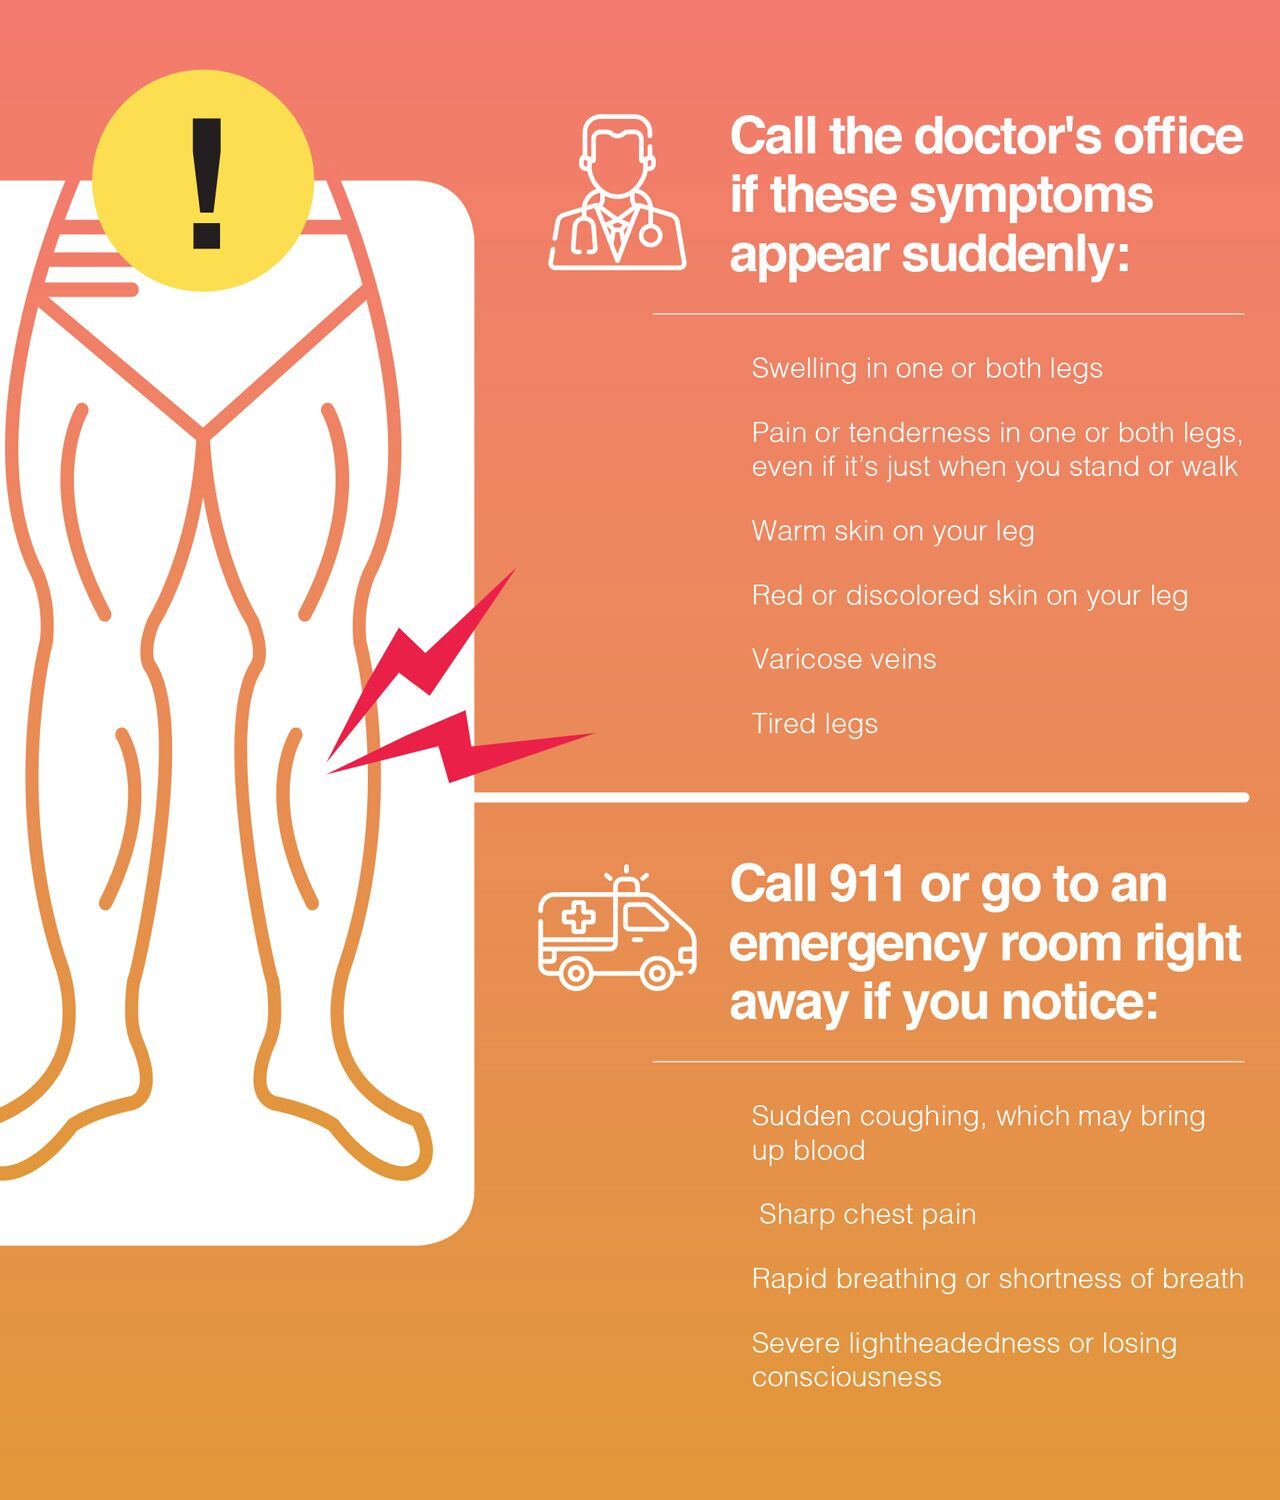 Warning signs of deep vein thrombosis